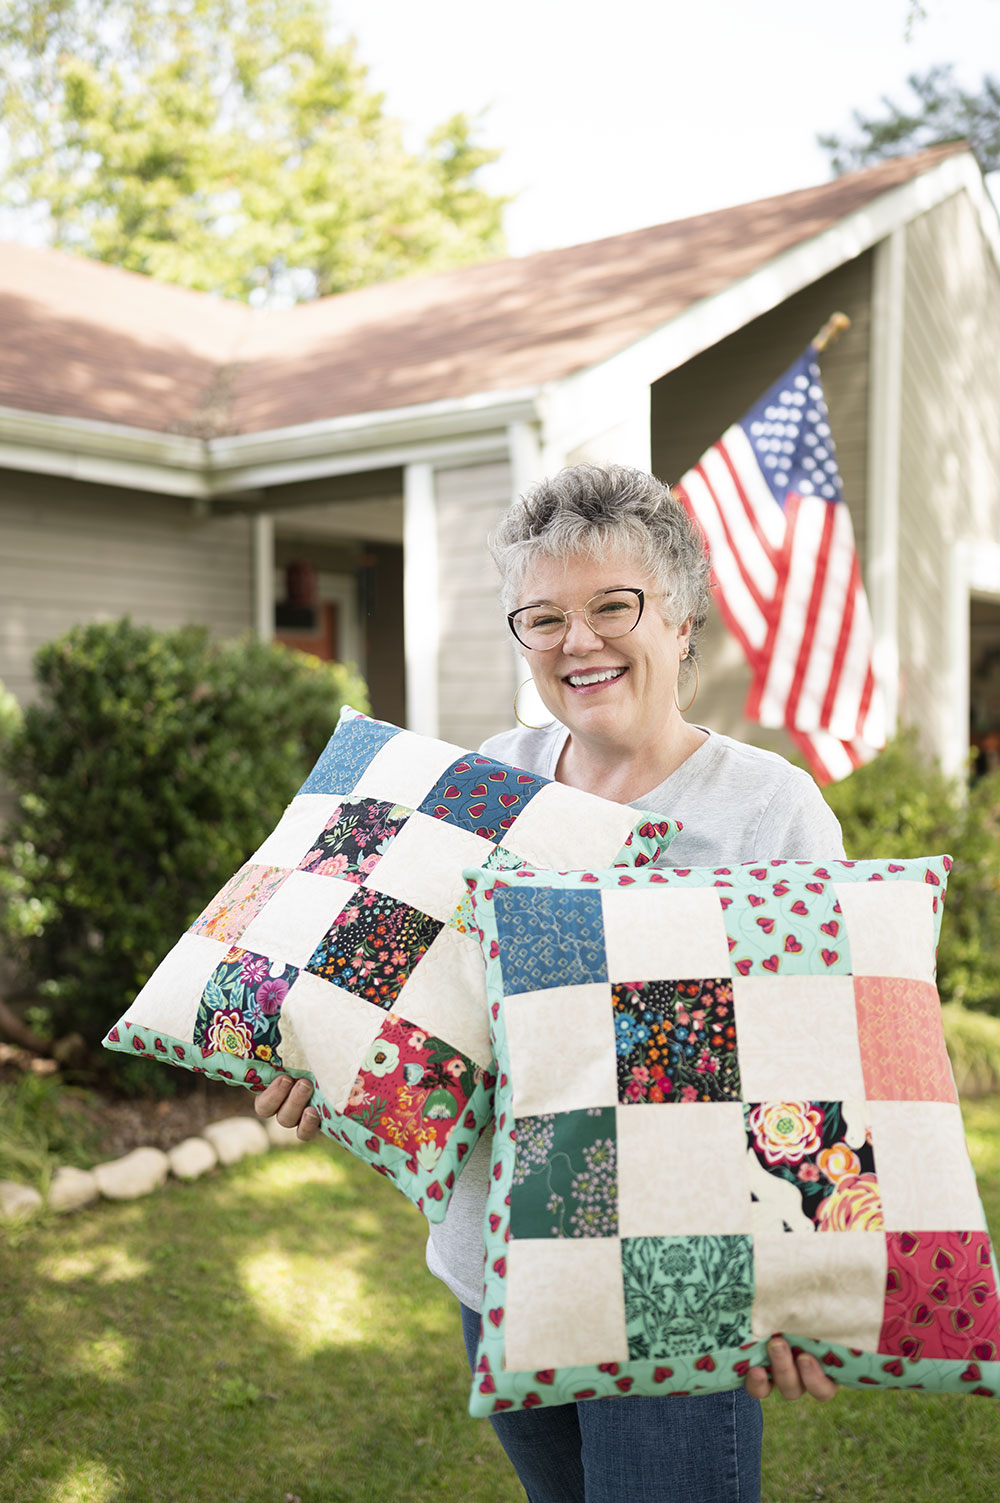 Smiling woman holds two large patchwork pillows in her front yard